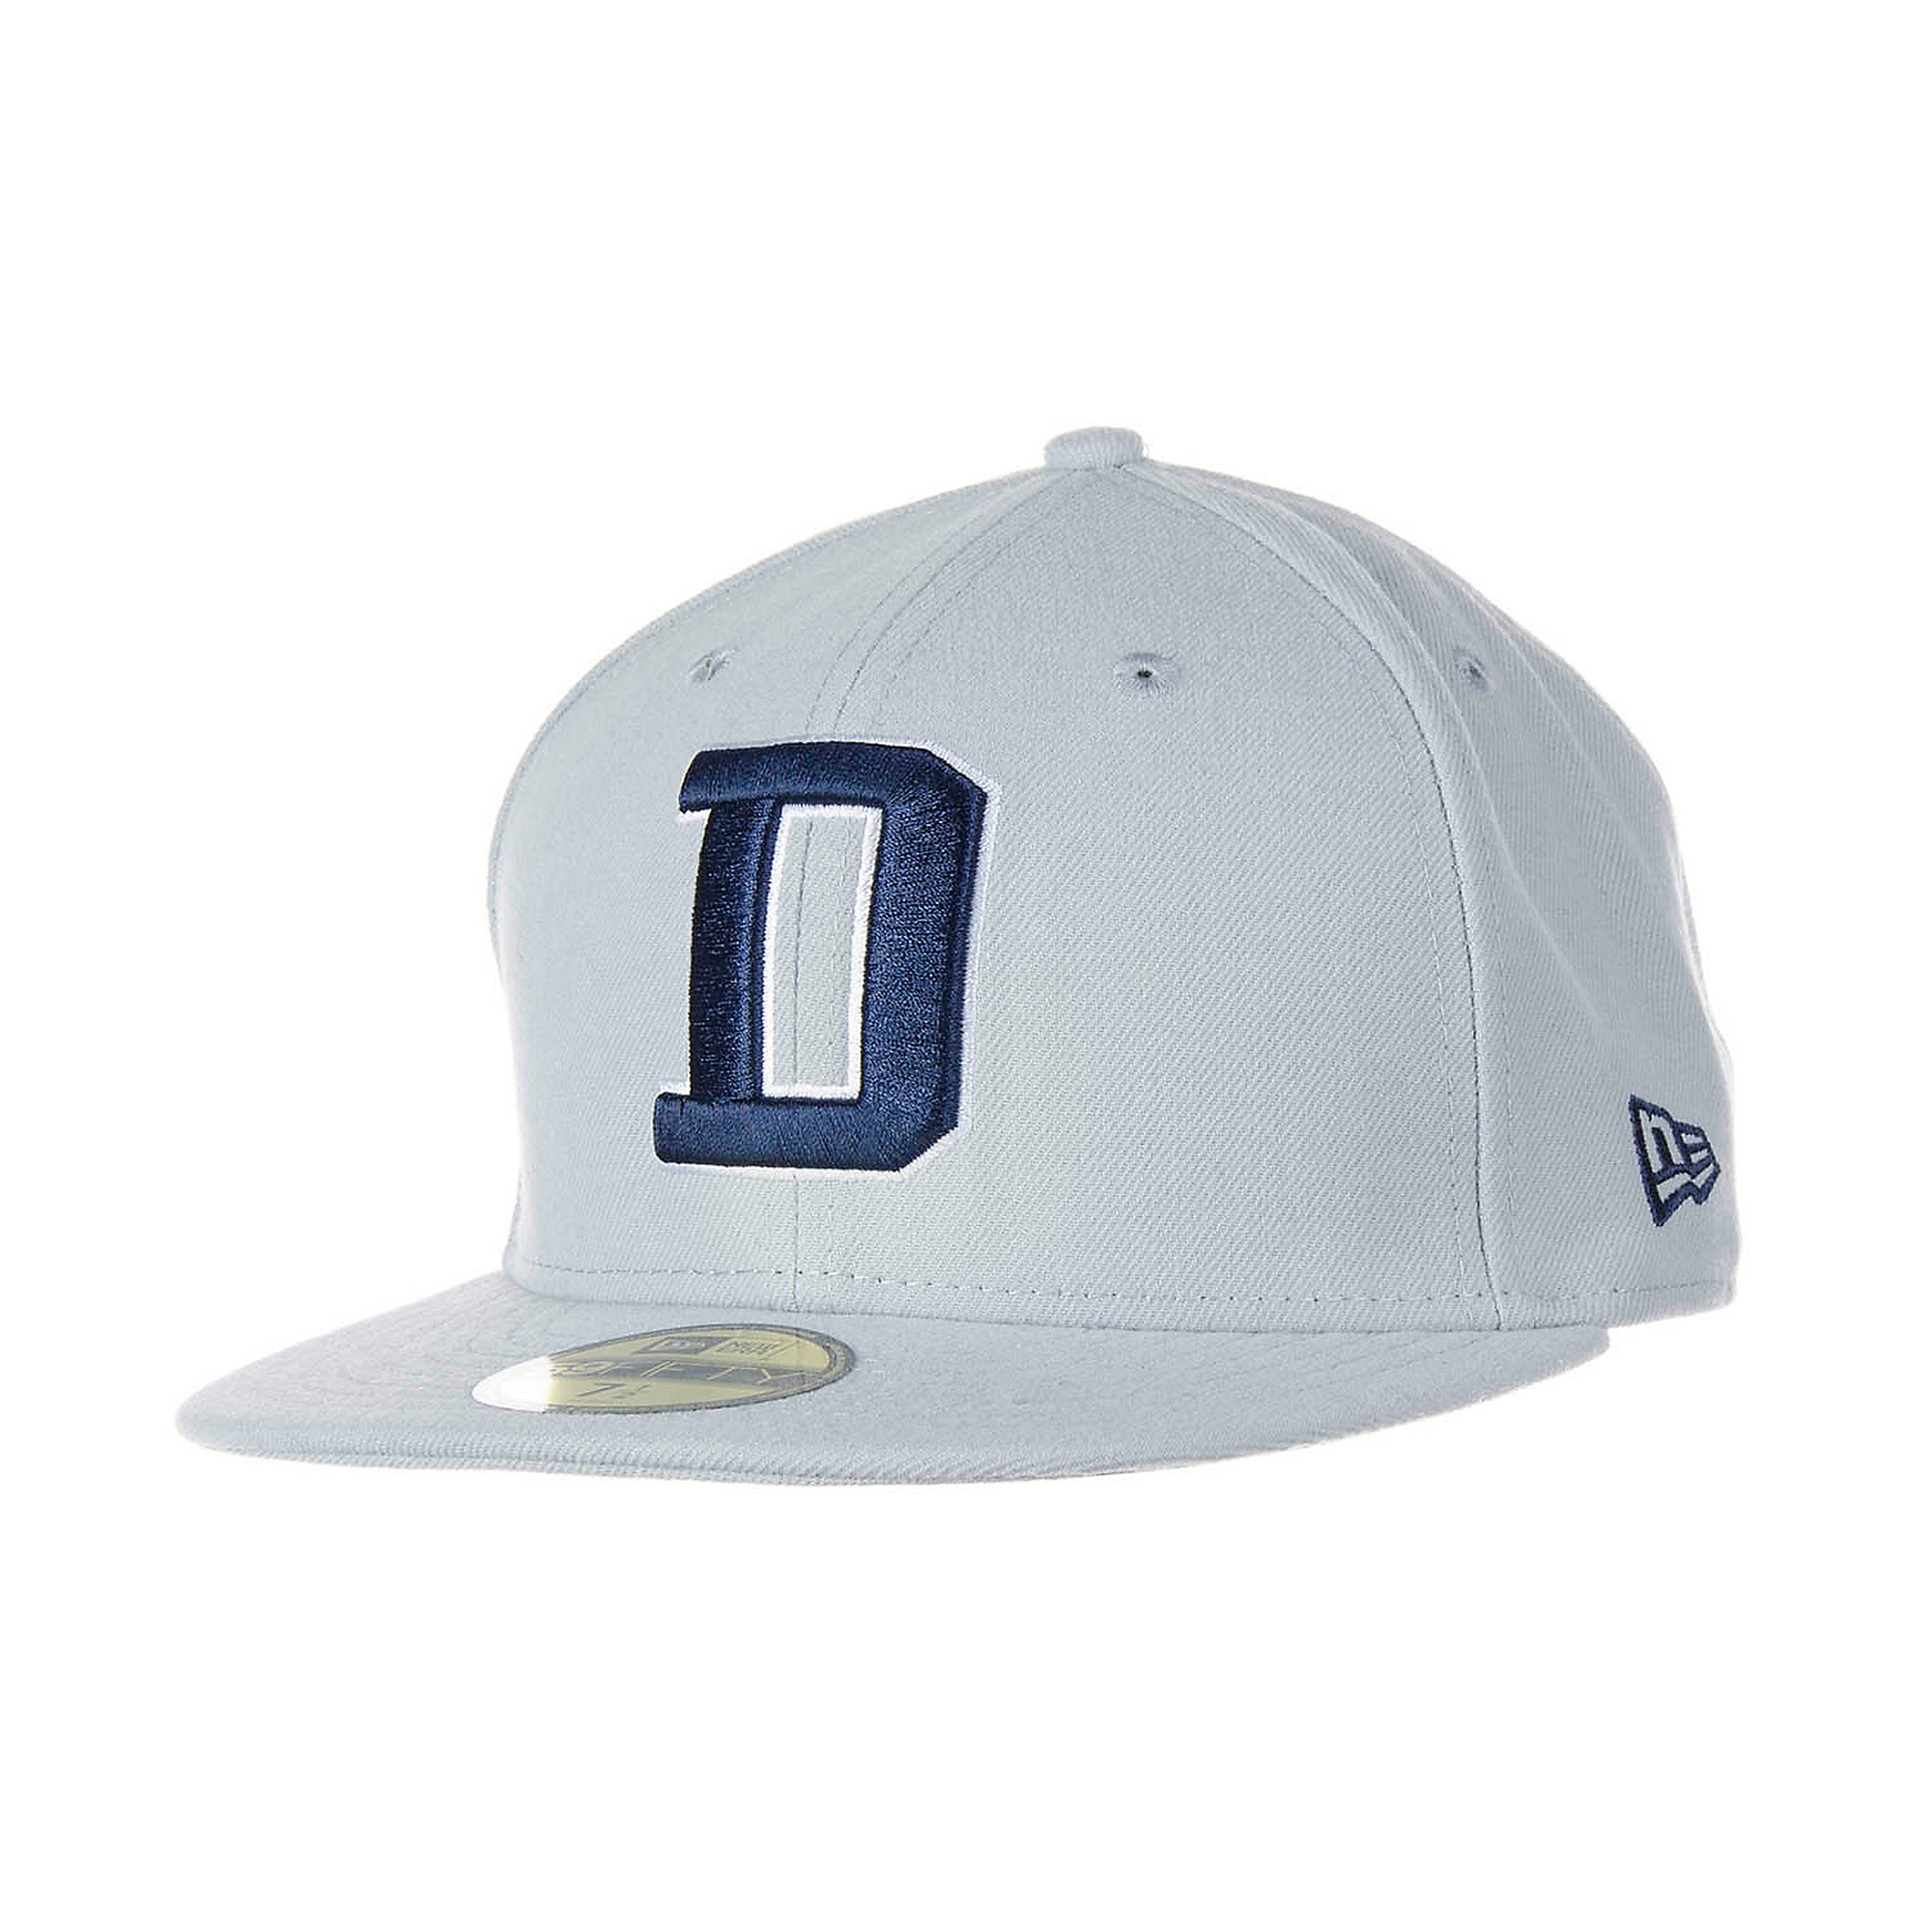 ... Dallas Cowboys New Era D Cap 59Fifty Cap ... bb3af3b14